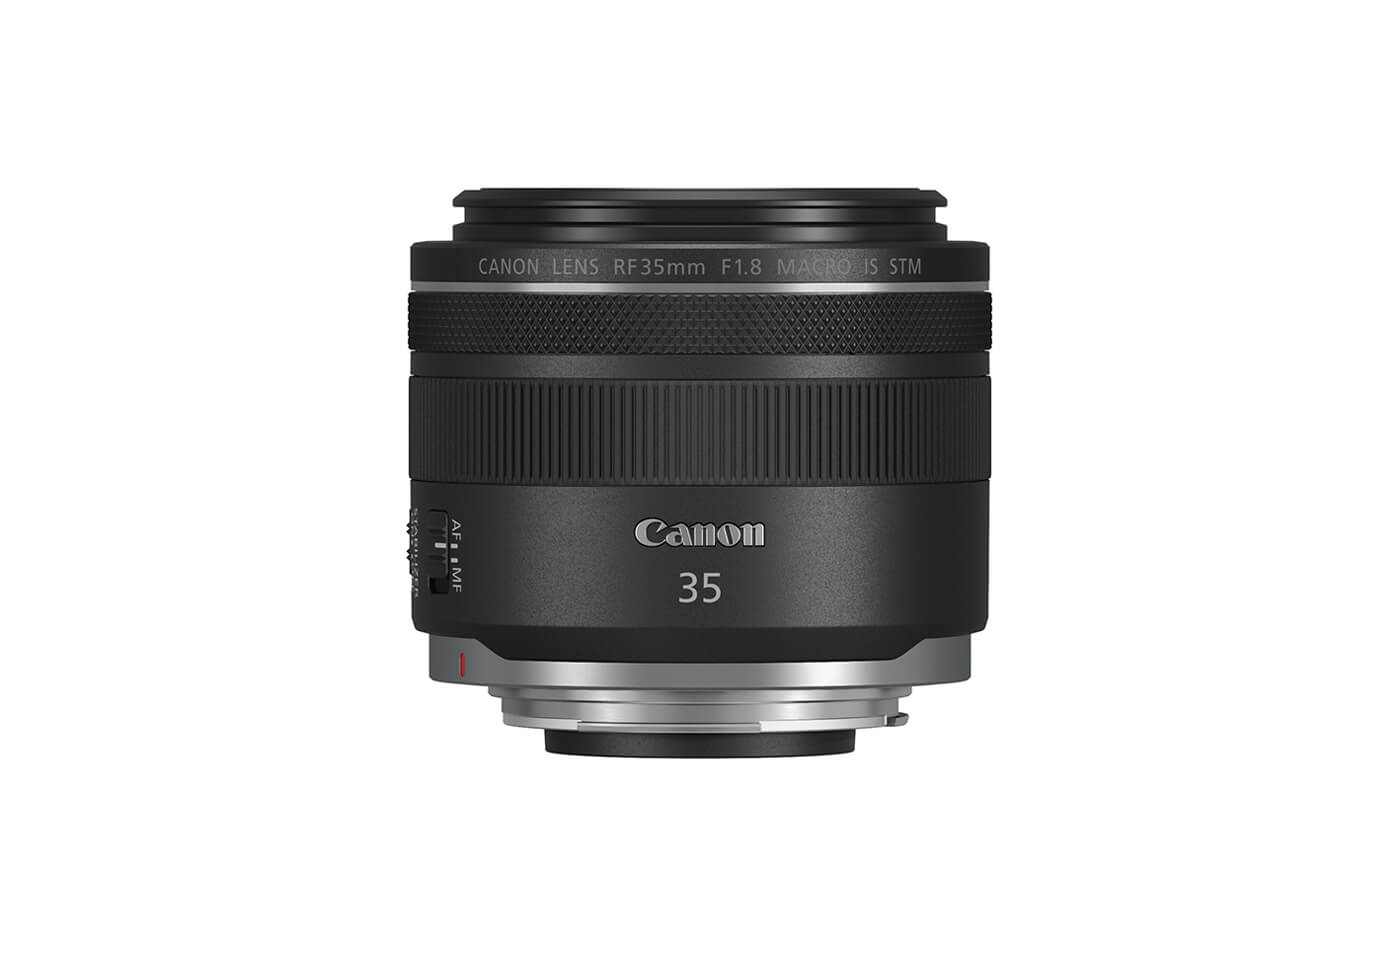 Image of RF 35mm f/1.8 Macro IS STM without cap